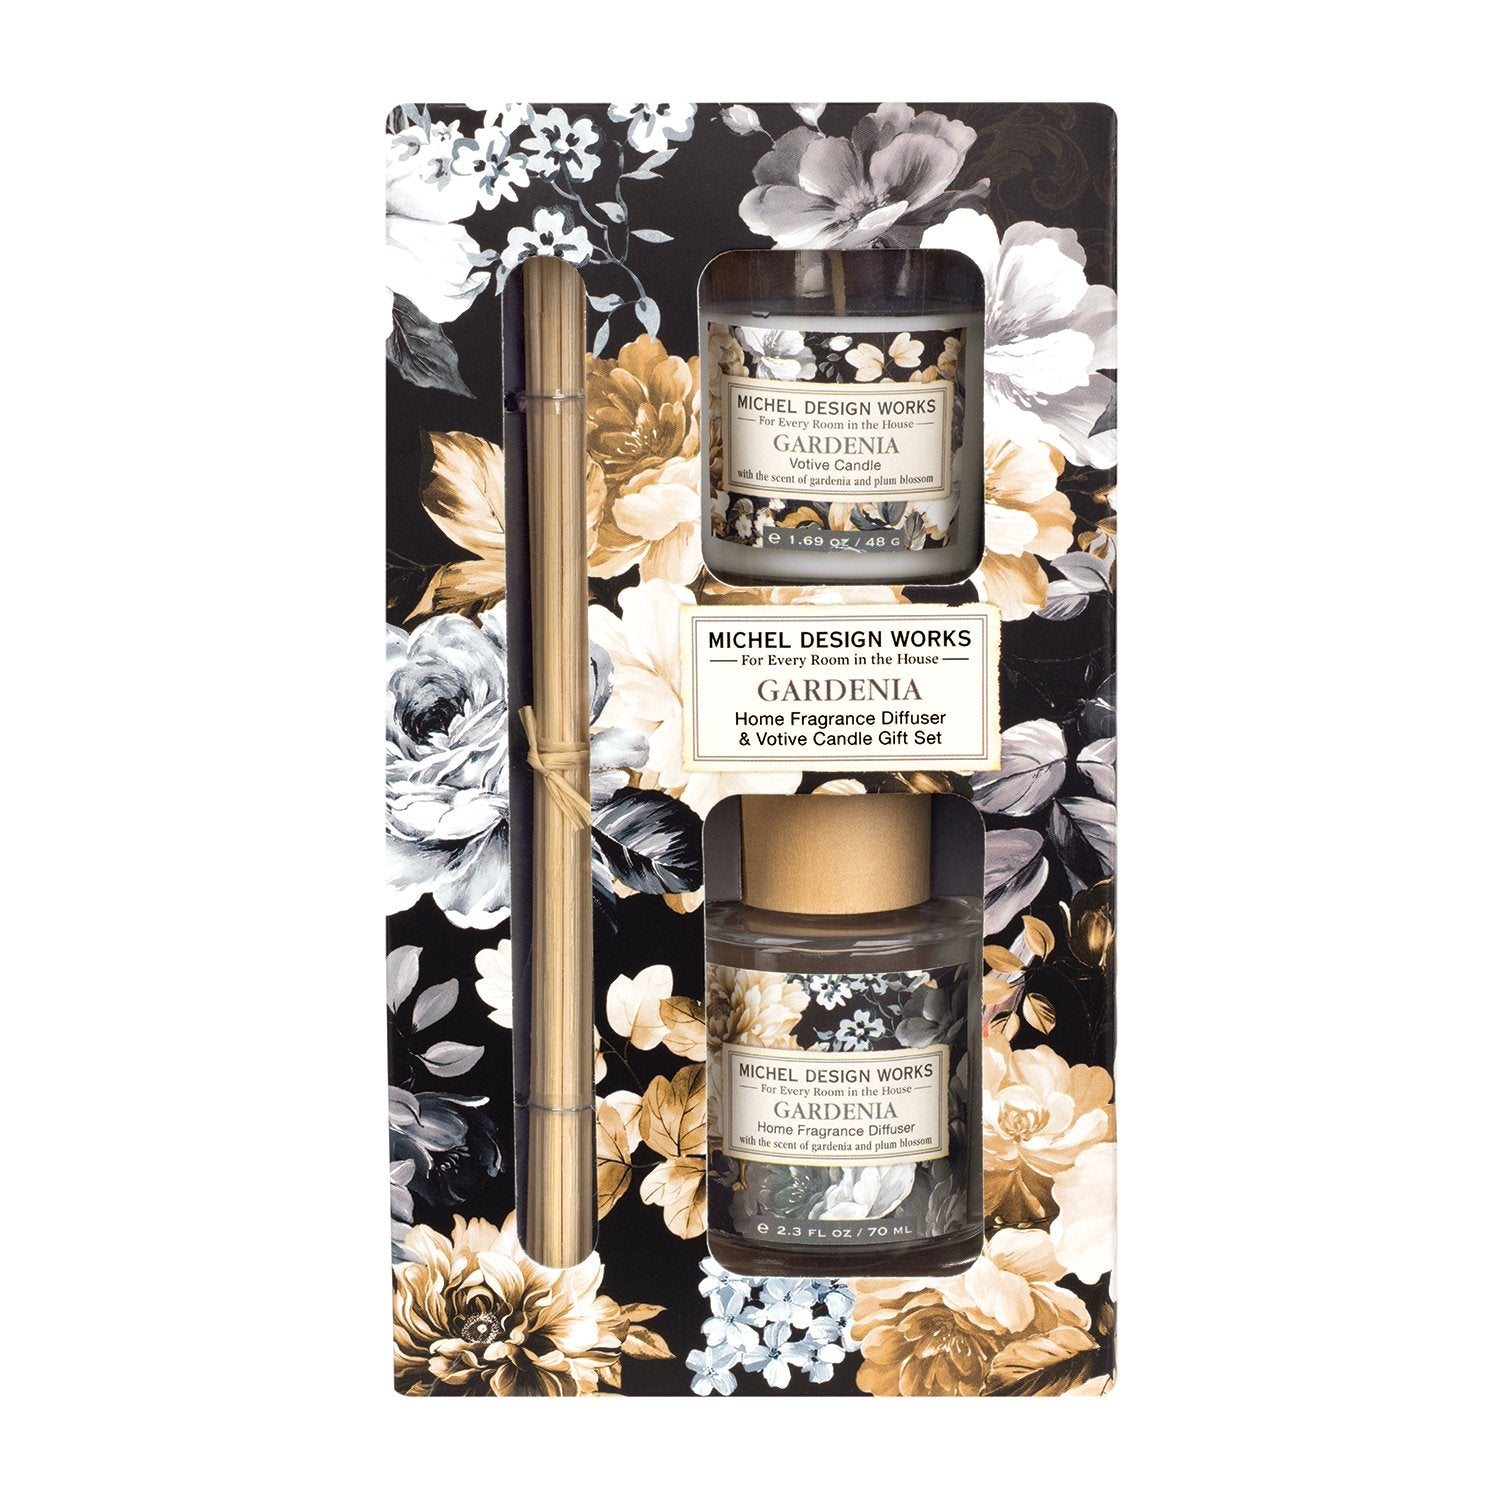 Gardenia Home Fragrance Diffuser and Votive Candle Set